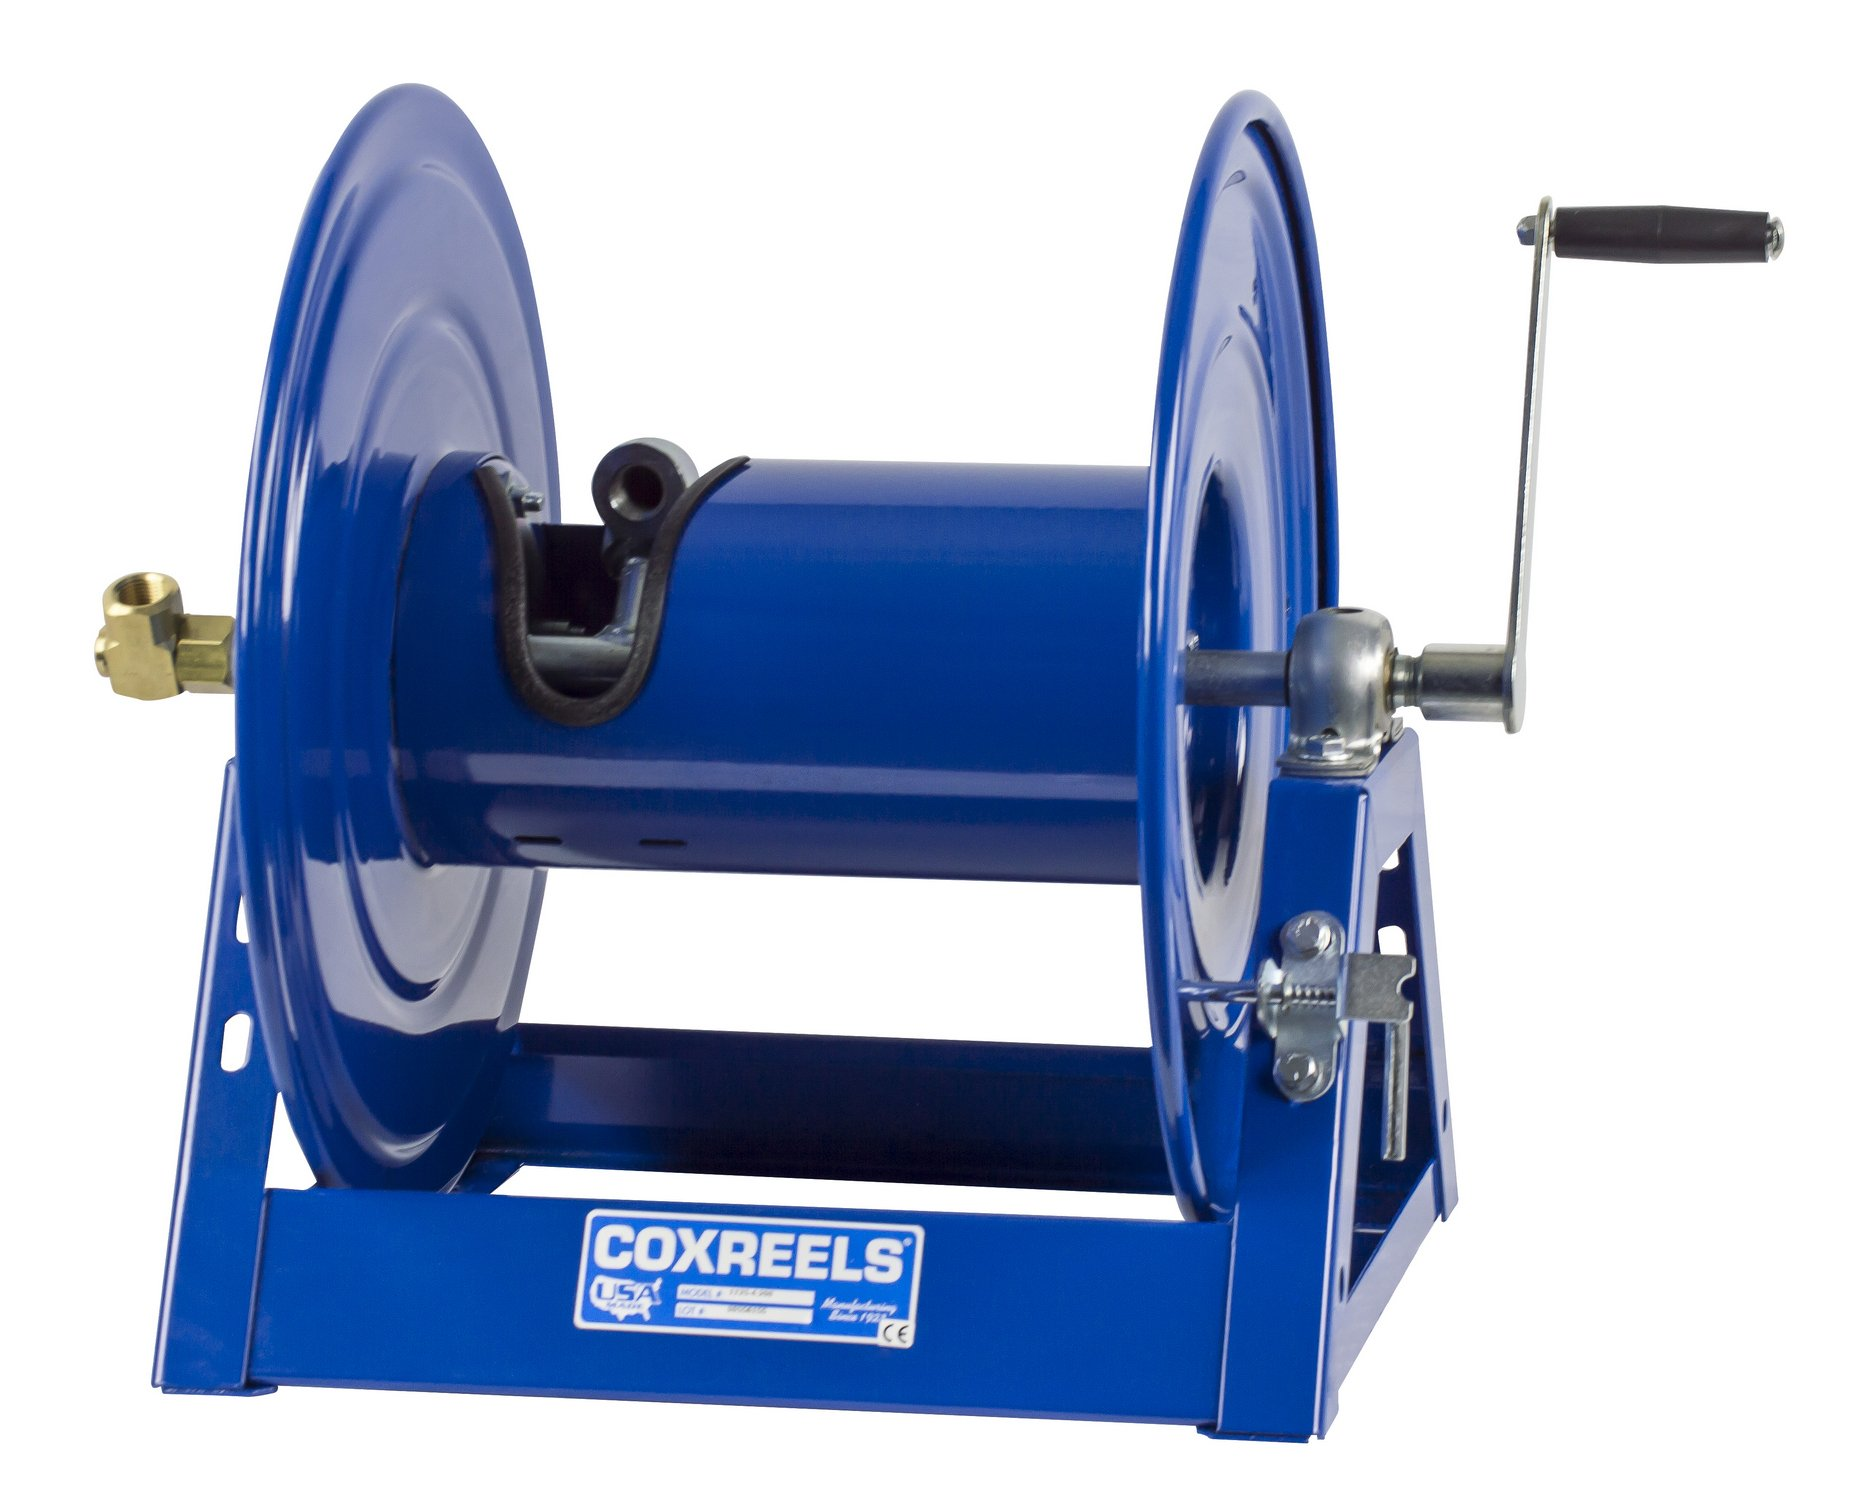 Coxreels 1125-4-100 Steel Hand Crank Hose Reel, 1/2'' Hose I.D., 100' Hose Capacity, 3,000 PSI, without Hose, Made in USA by Coxreels (Image #10)